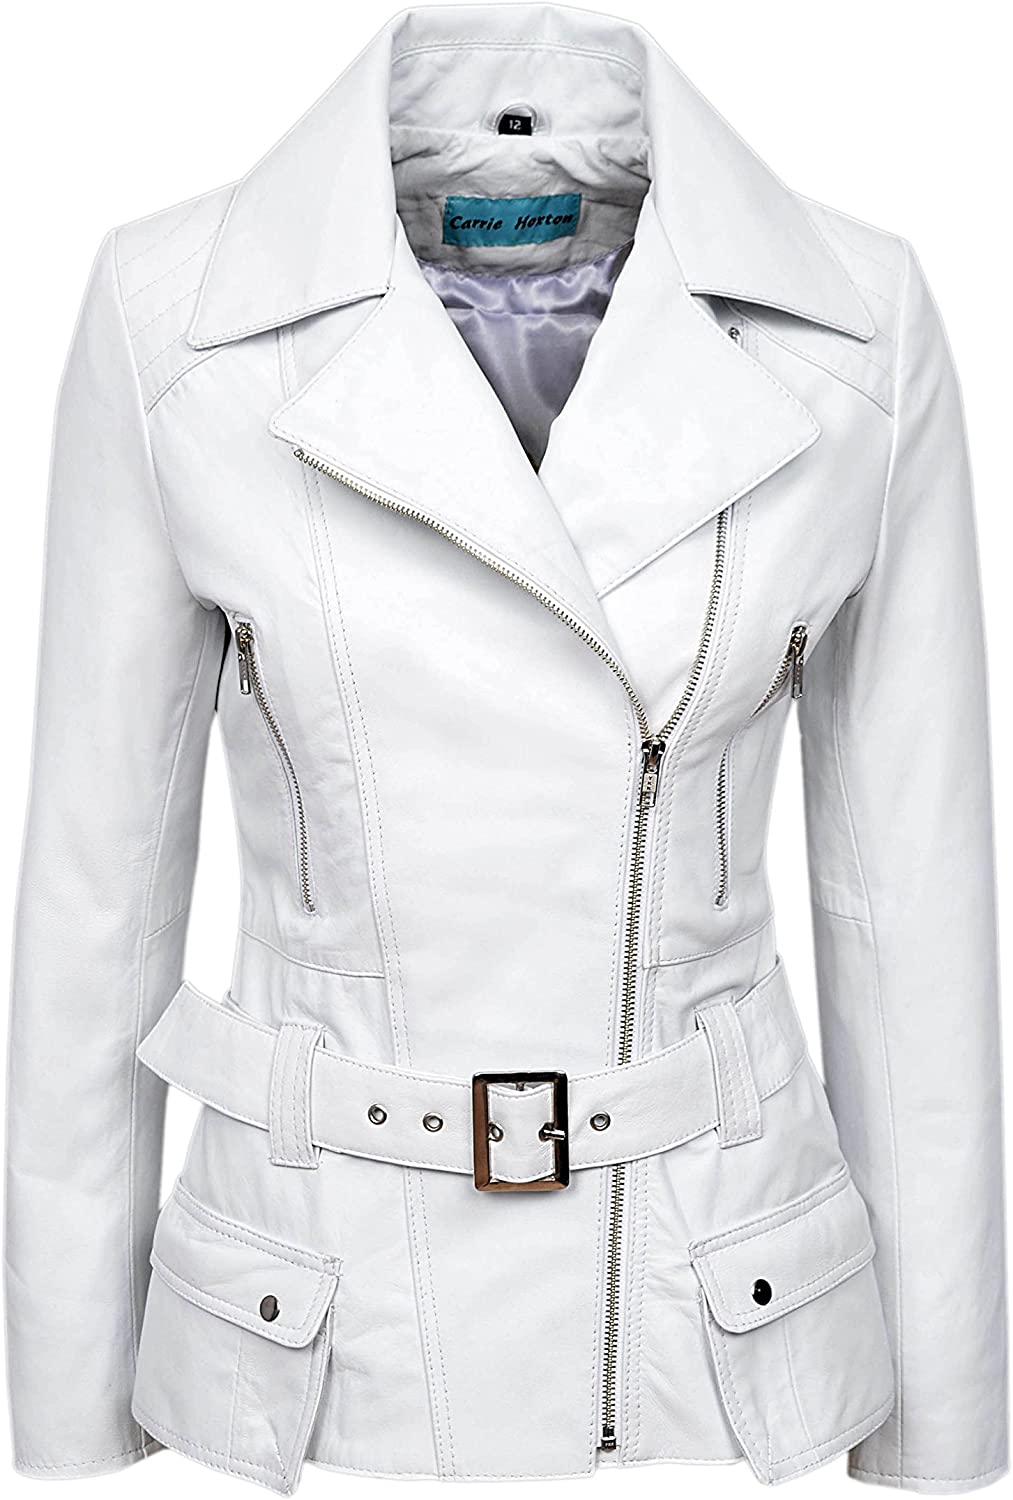 Carrie CH Hoxton 'Feminine' White Napa Ladies Biker Style Designer Real Leather Jacket 2812